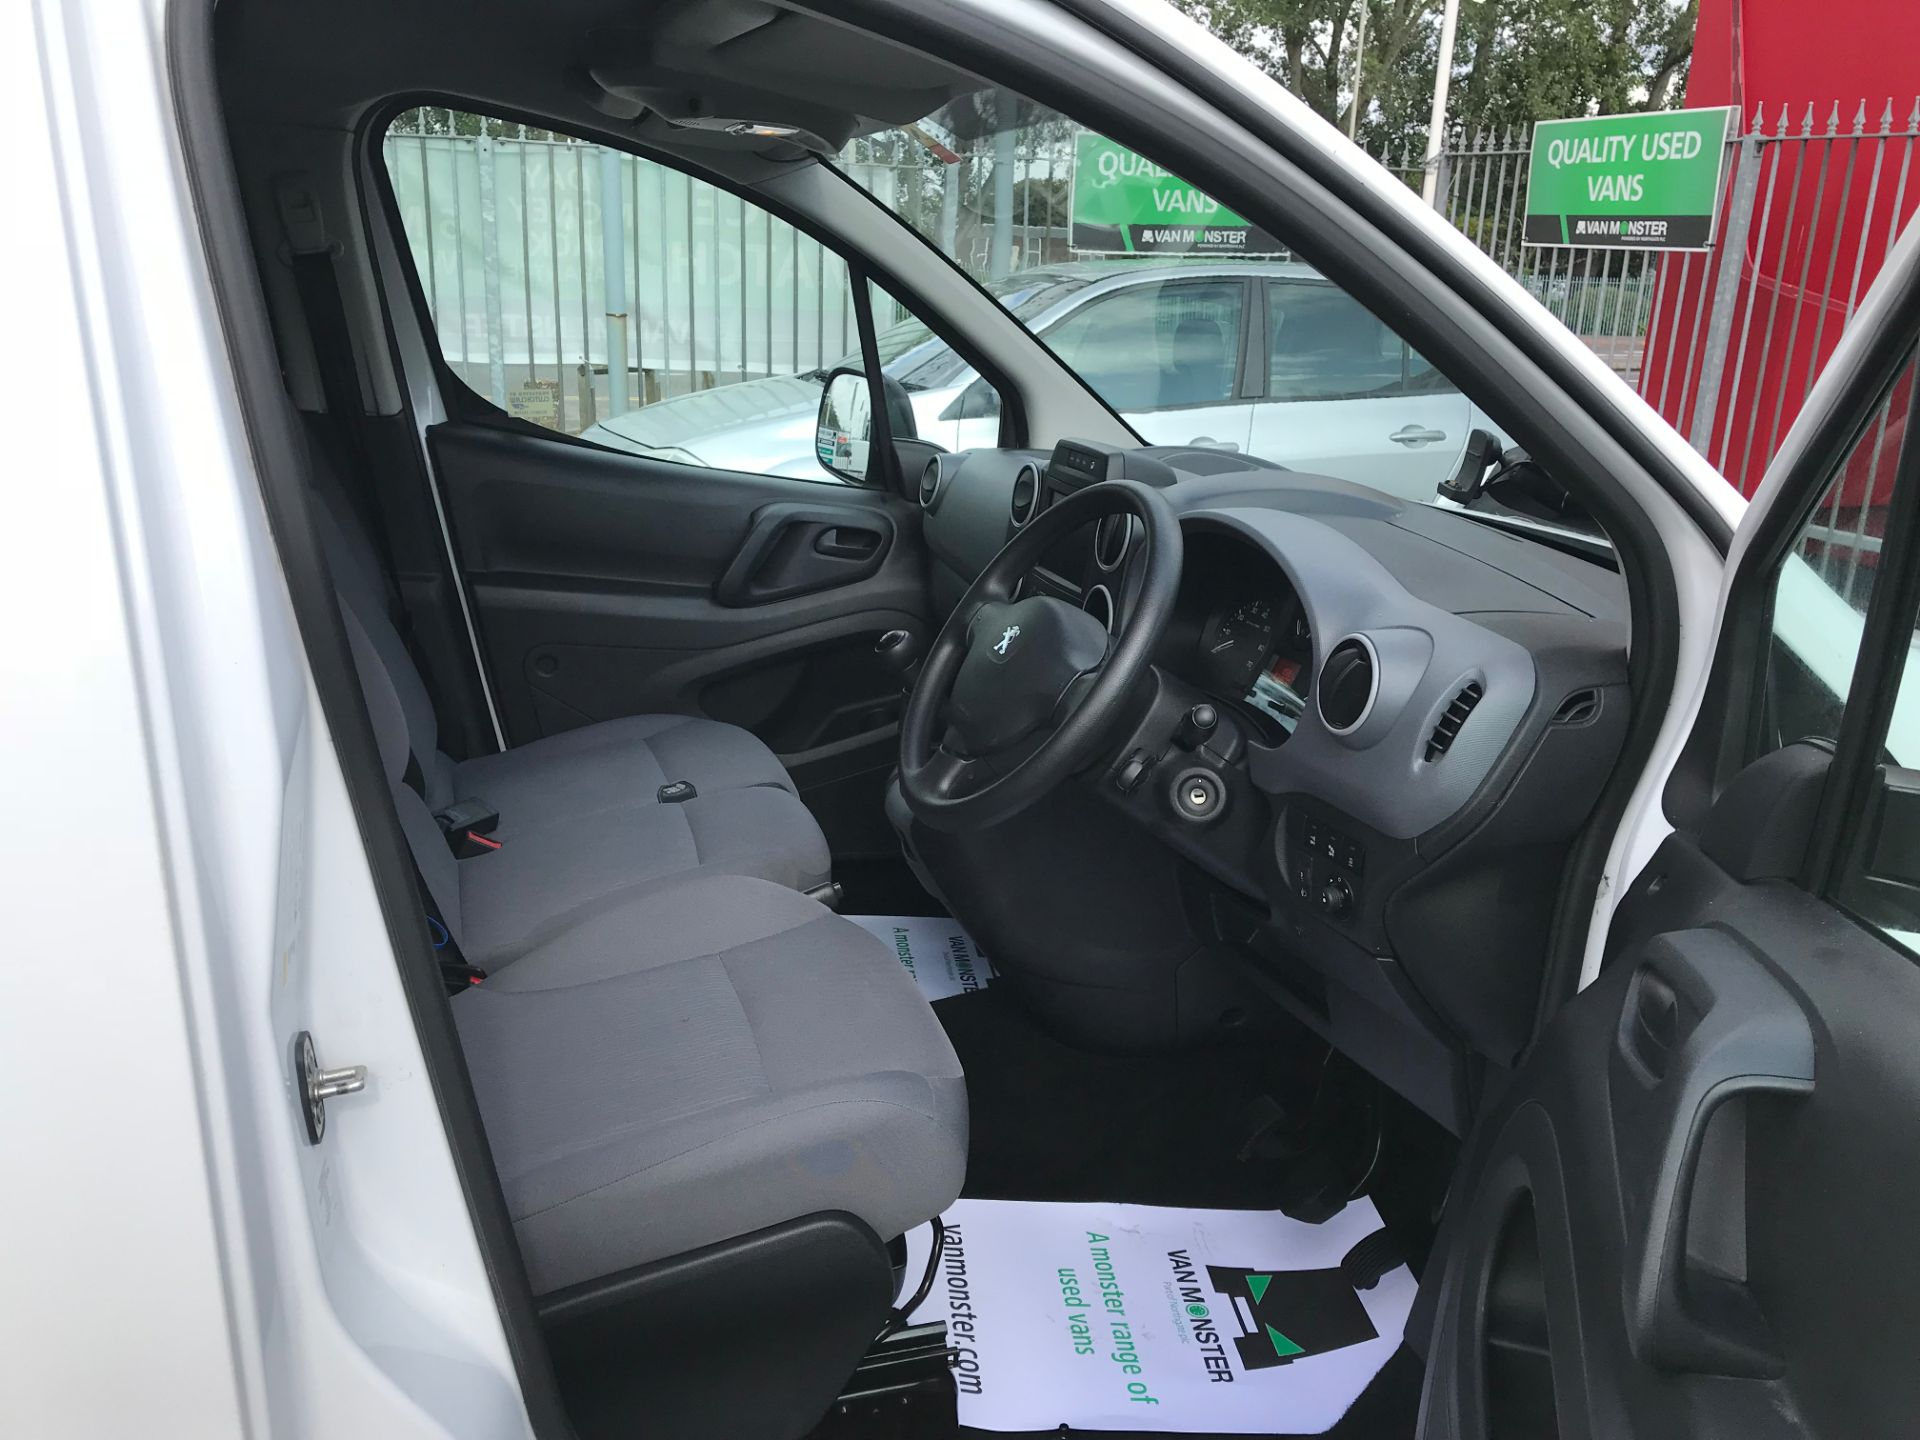 2016 Peugeot Partner L1 850 S 1.6 92PS (SLD) PROFESSIONAL 3 SEATS EURO 5  (OY16ZWS) Image 11